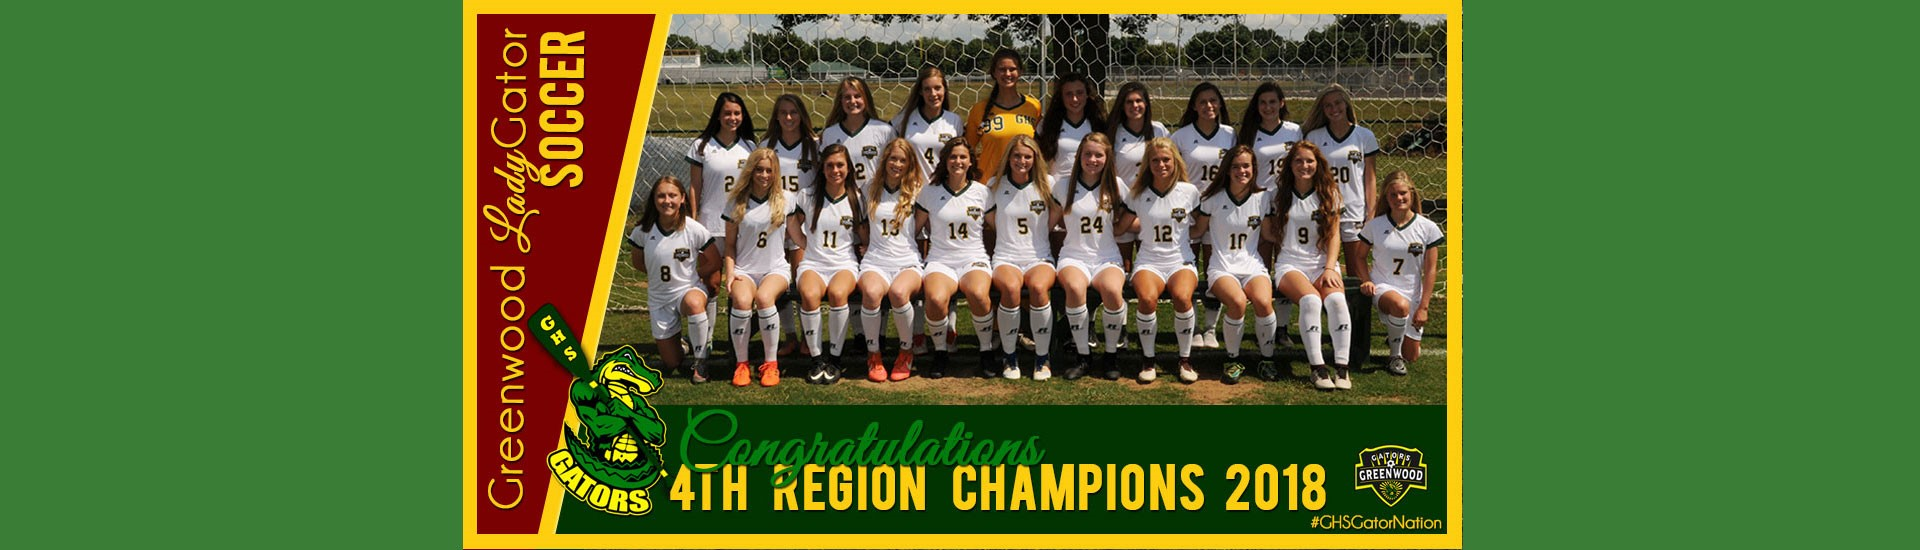 girls' soccer 4th region champions